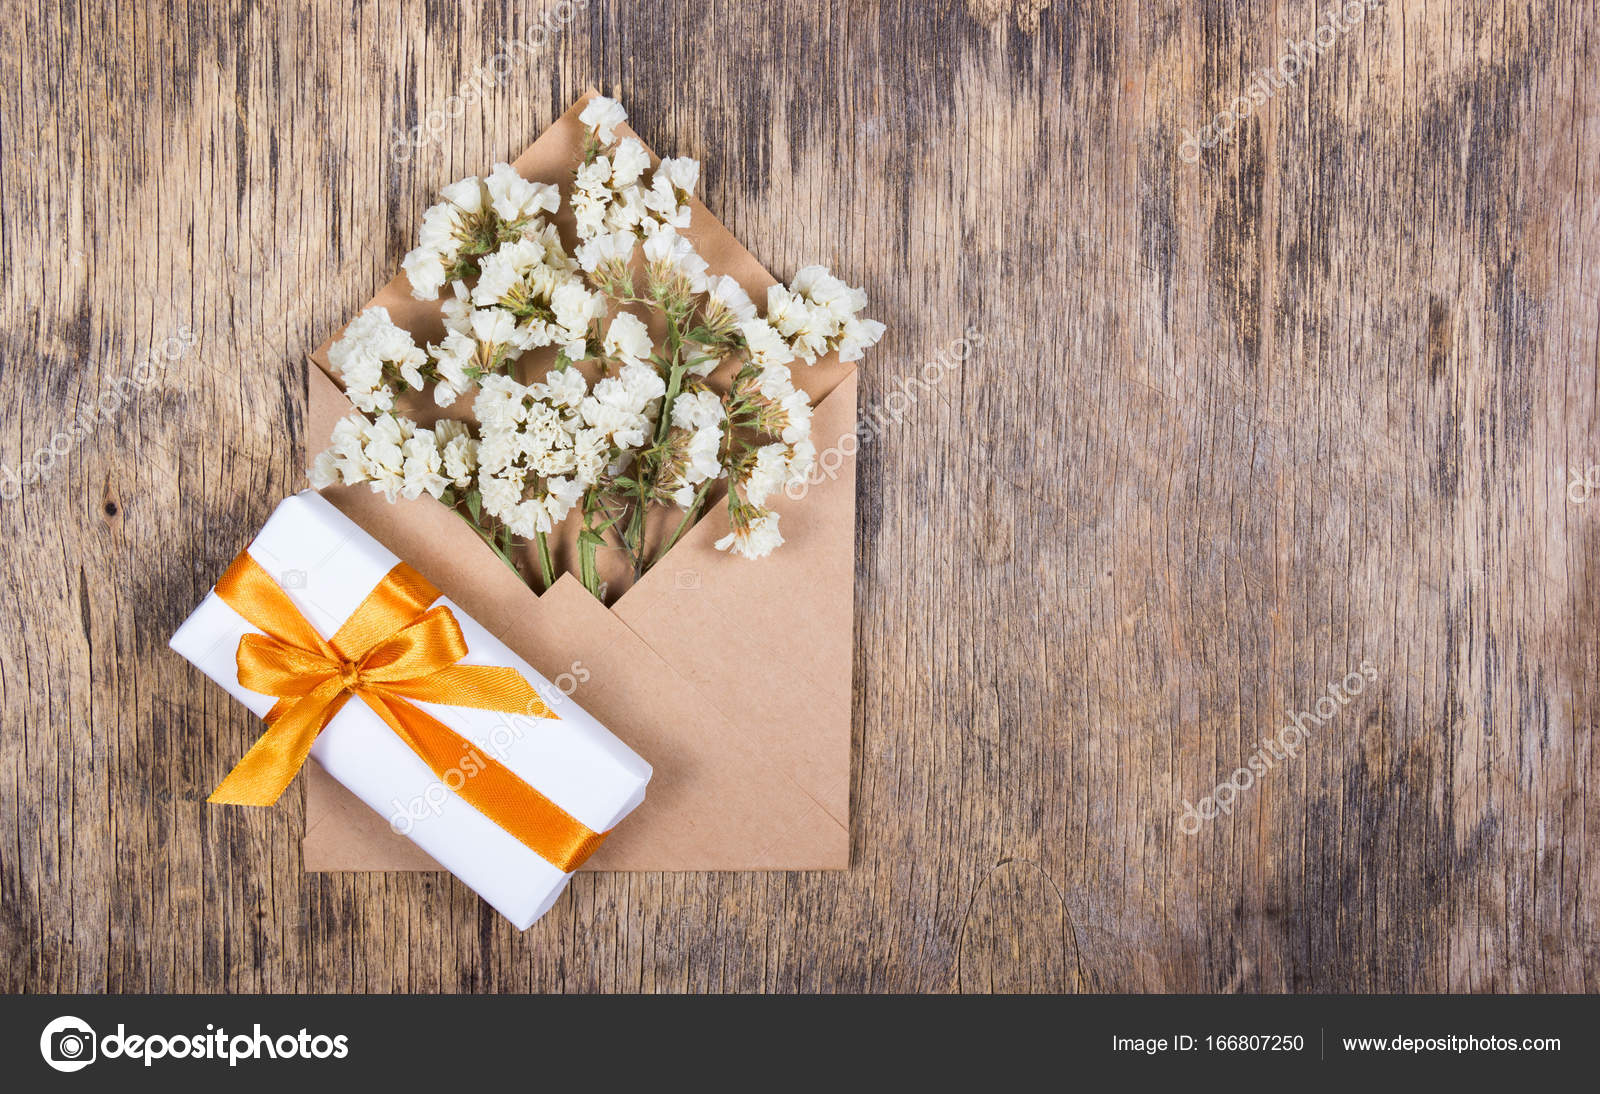 White Dried Flowers In A Paper Envelope And A Box With A Gift With A